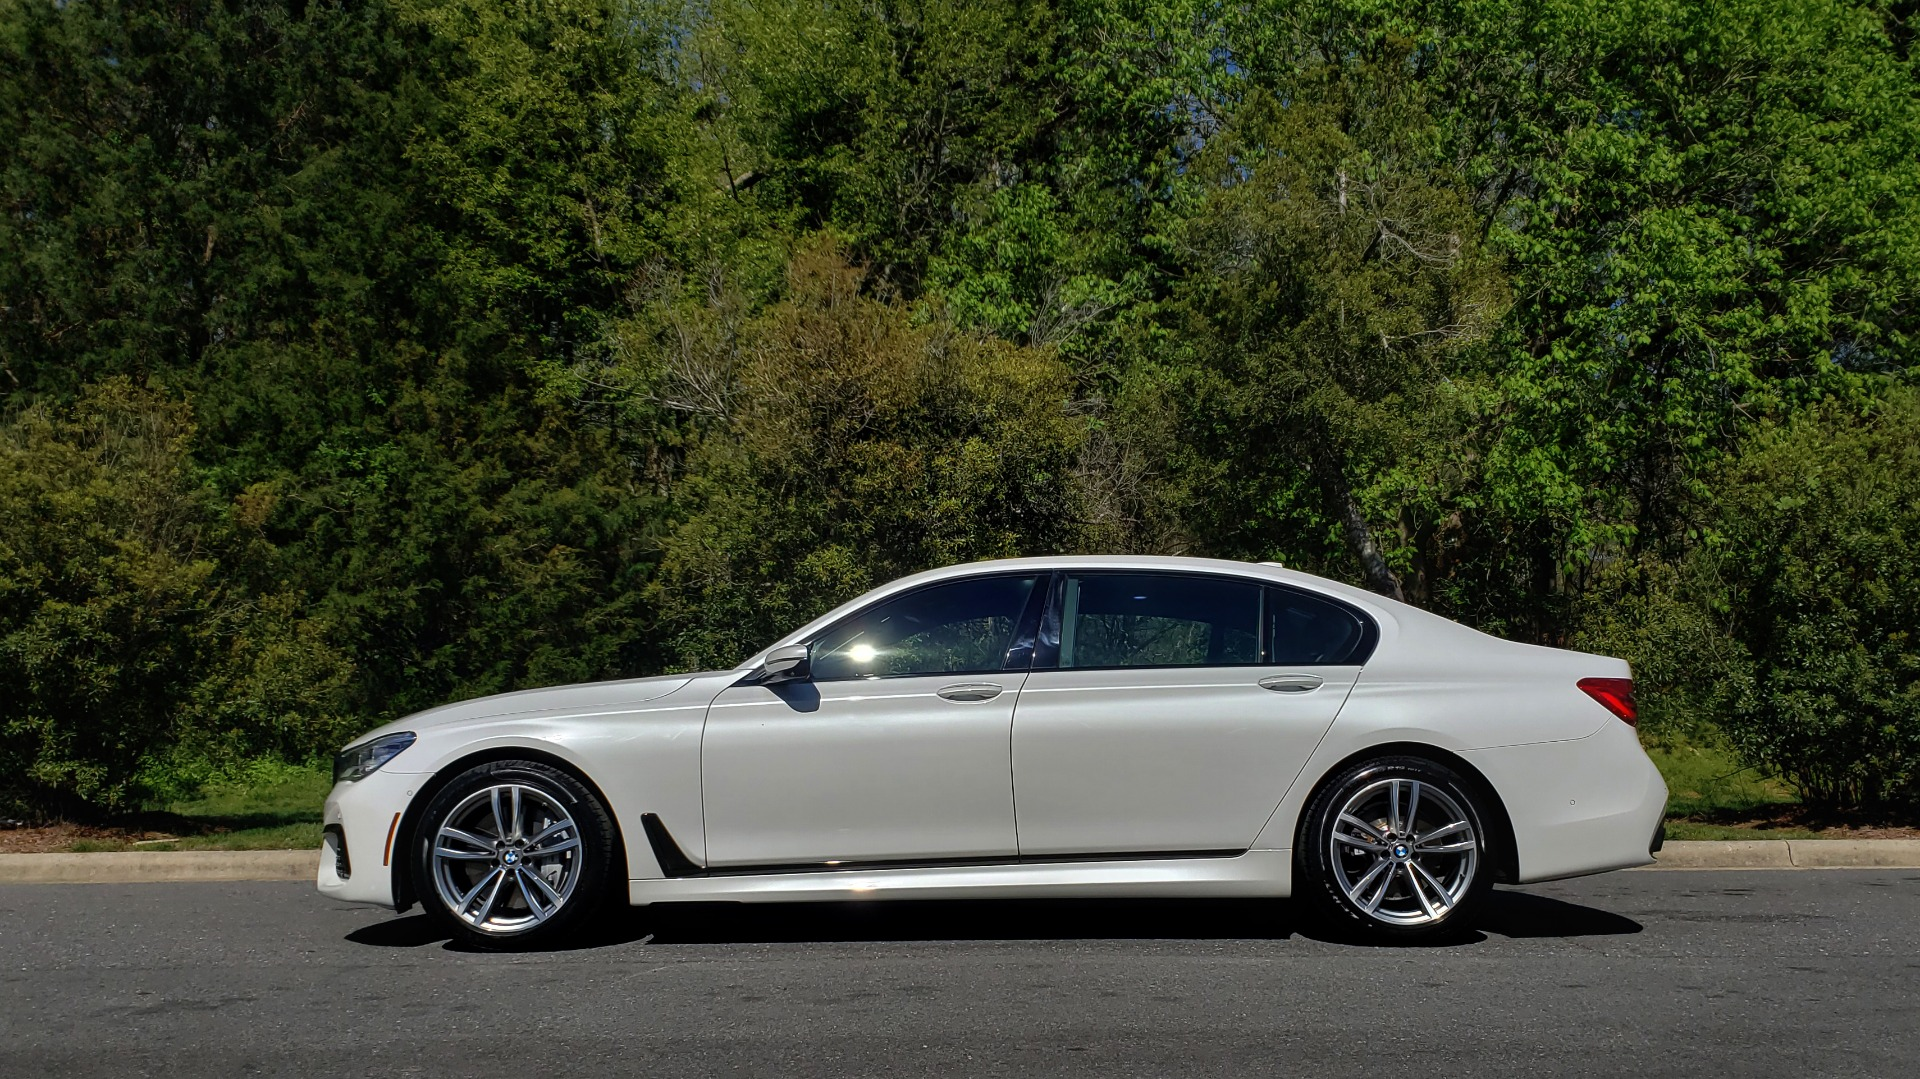 Used 2017 BMW 7 SERIES 750I XDRIVE / M-SPORT / EXEC PKG / DRVR ASST PLUS II / CLD WTHR for sale $48,495 at Formula Imports in Charlotte NC 28227 2